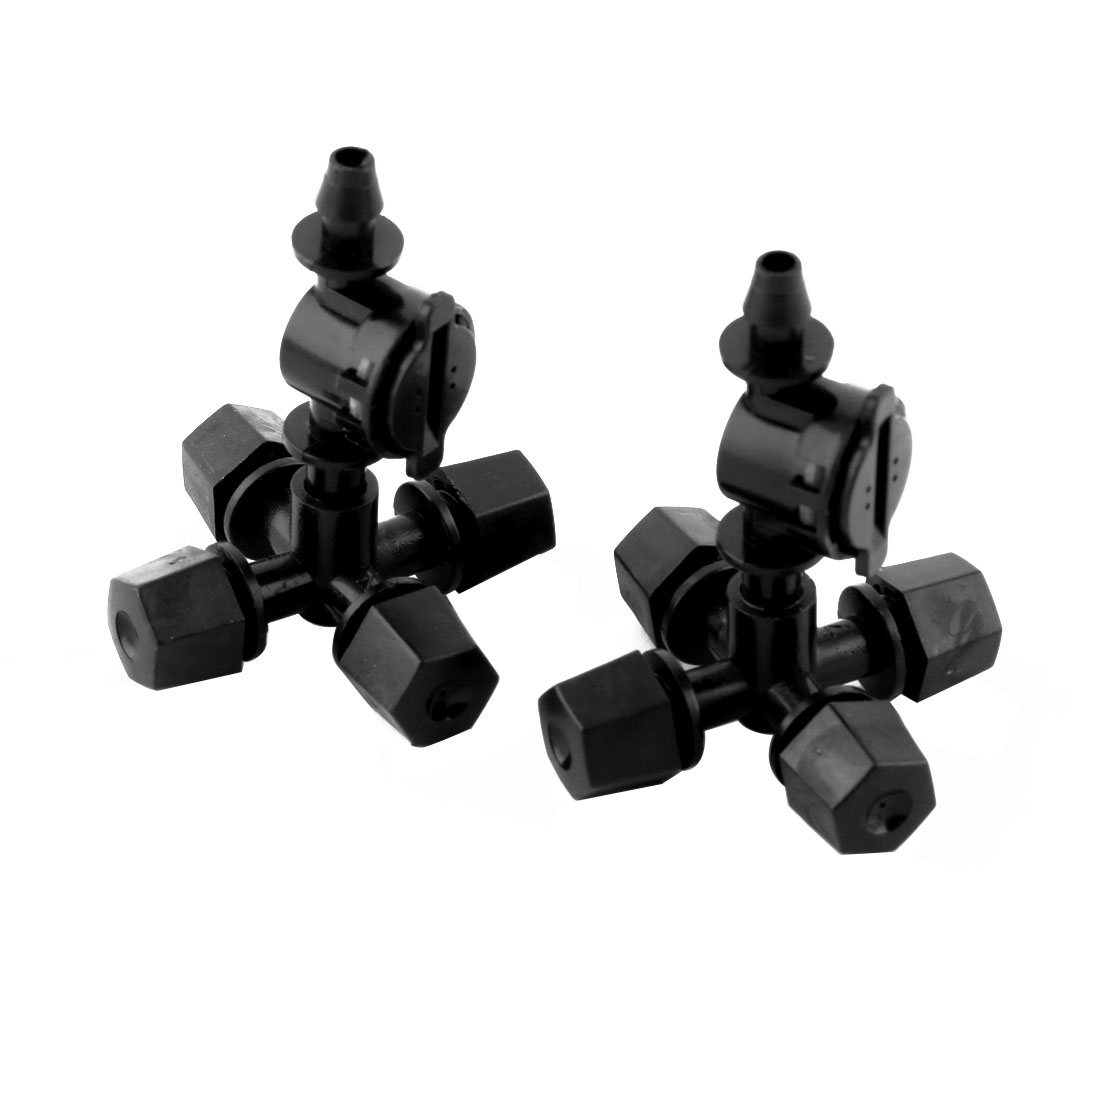 Home Irrigation Plastic 4 Water Outer Antidrip Sprinkler Spray Nozzle Black 2pcs